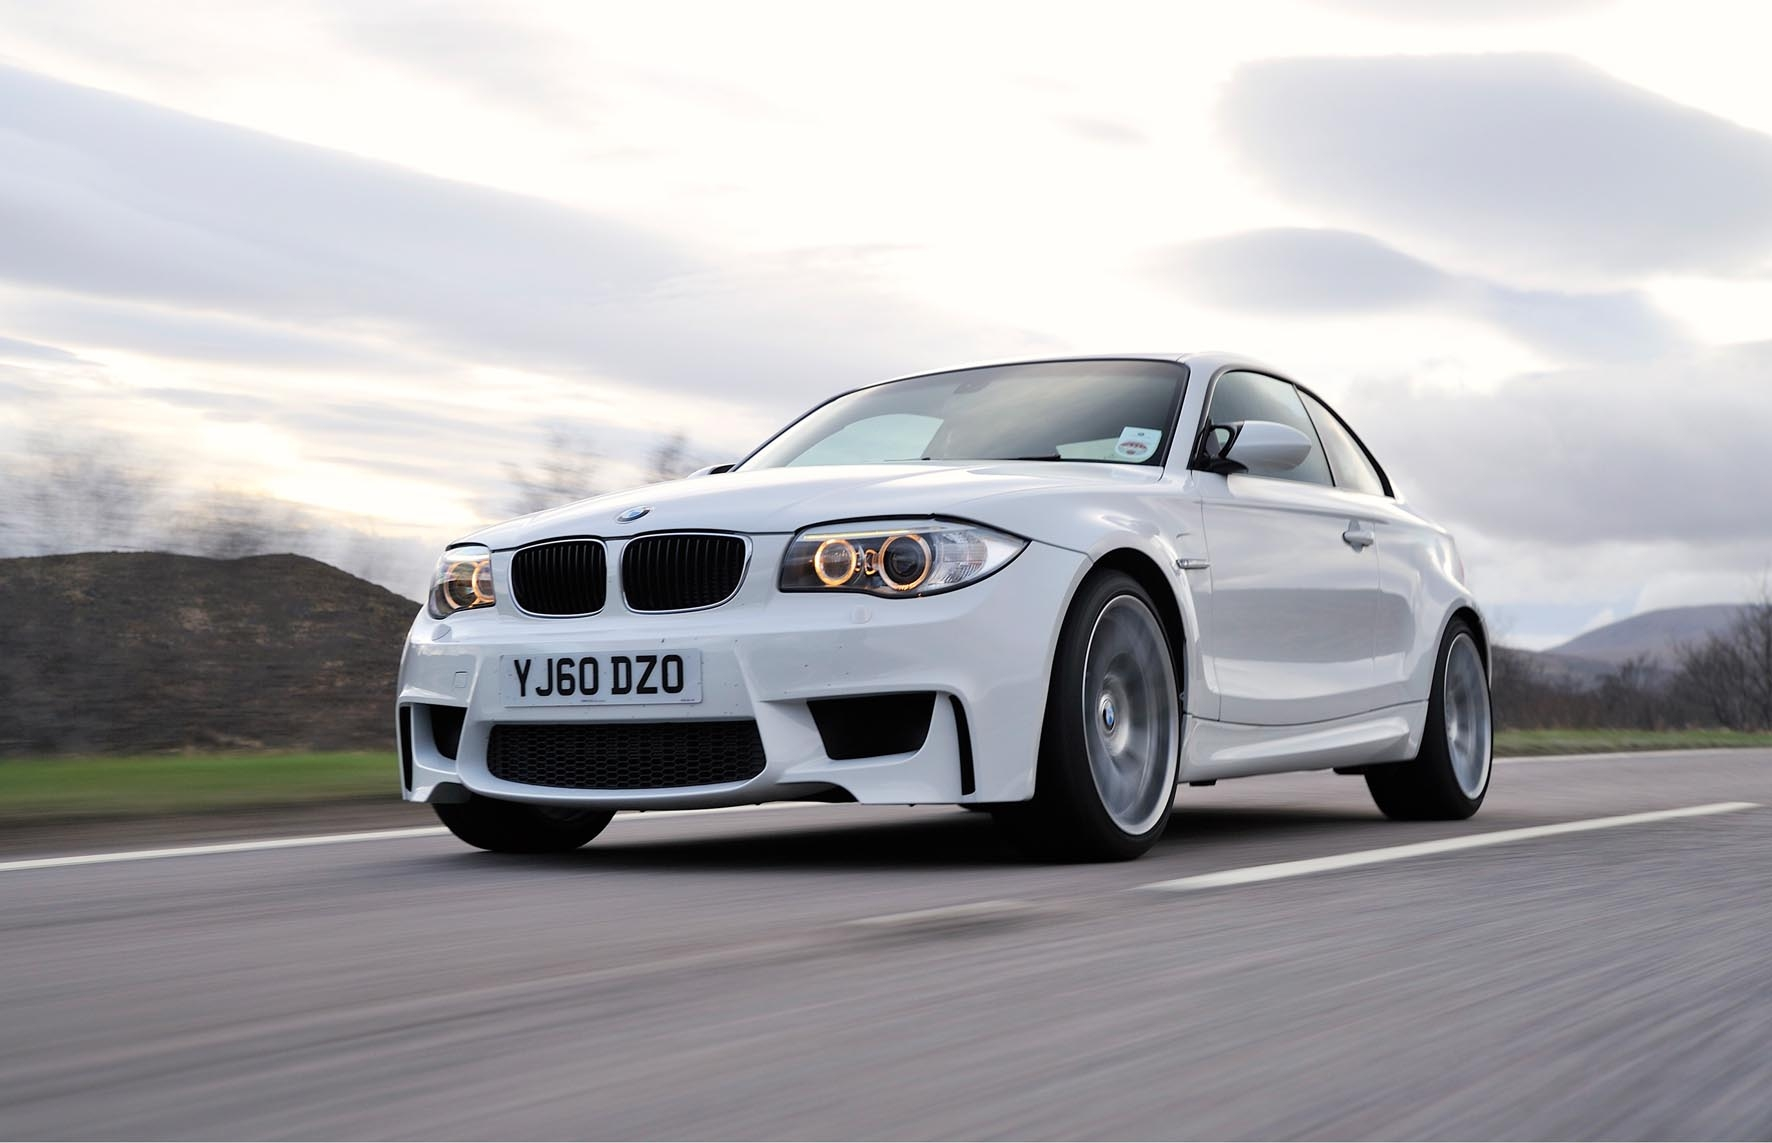 2011 bmw 1 series wallpaper free hd resolutions my site. Black Bedroom Furniture Sets. Home Design Ideas